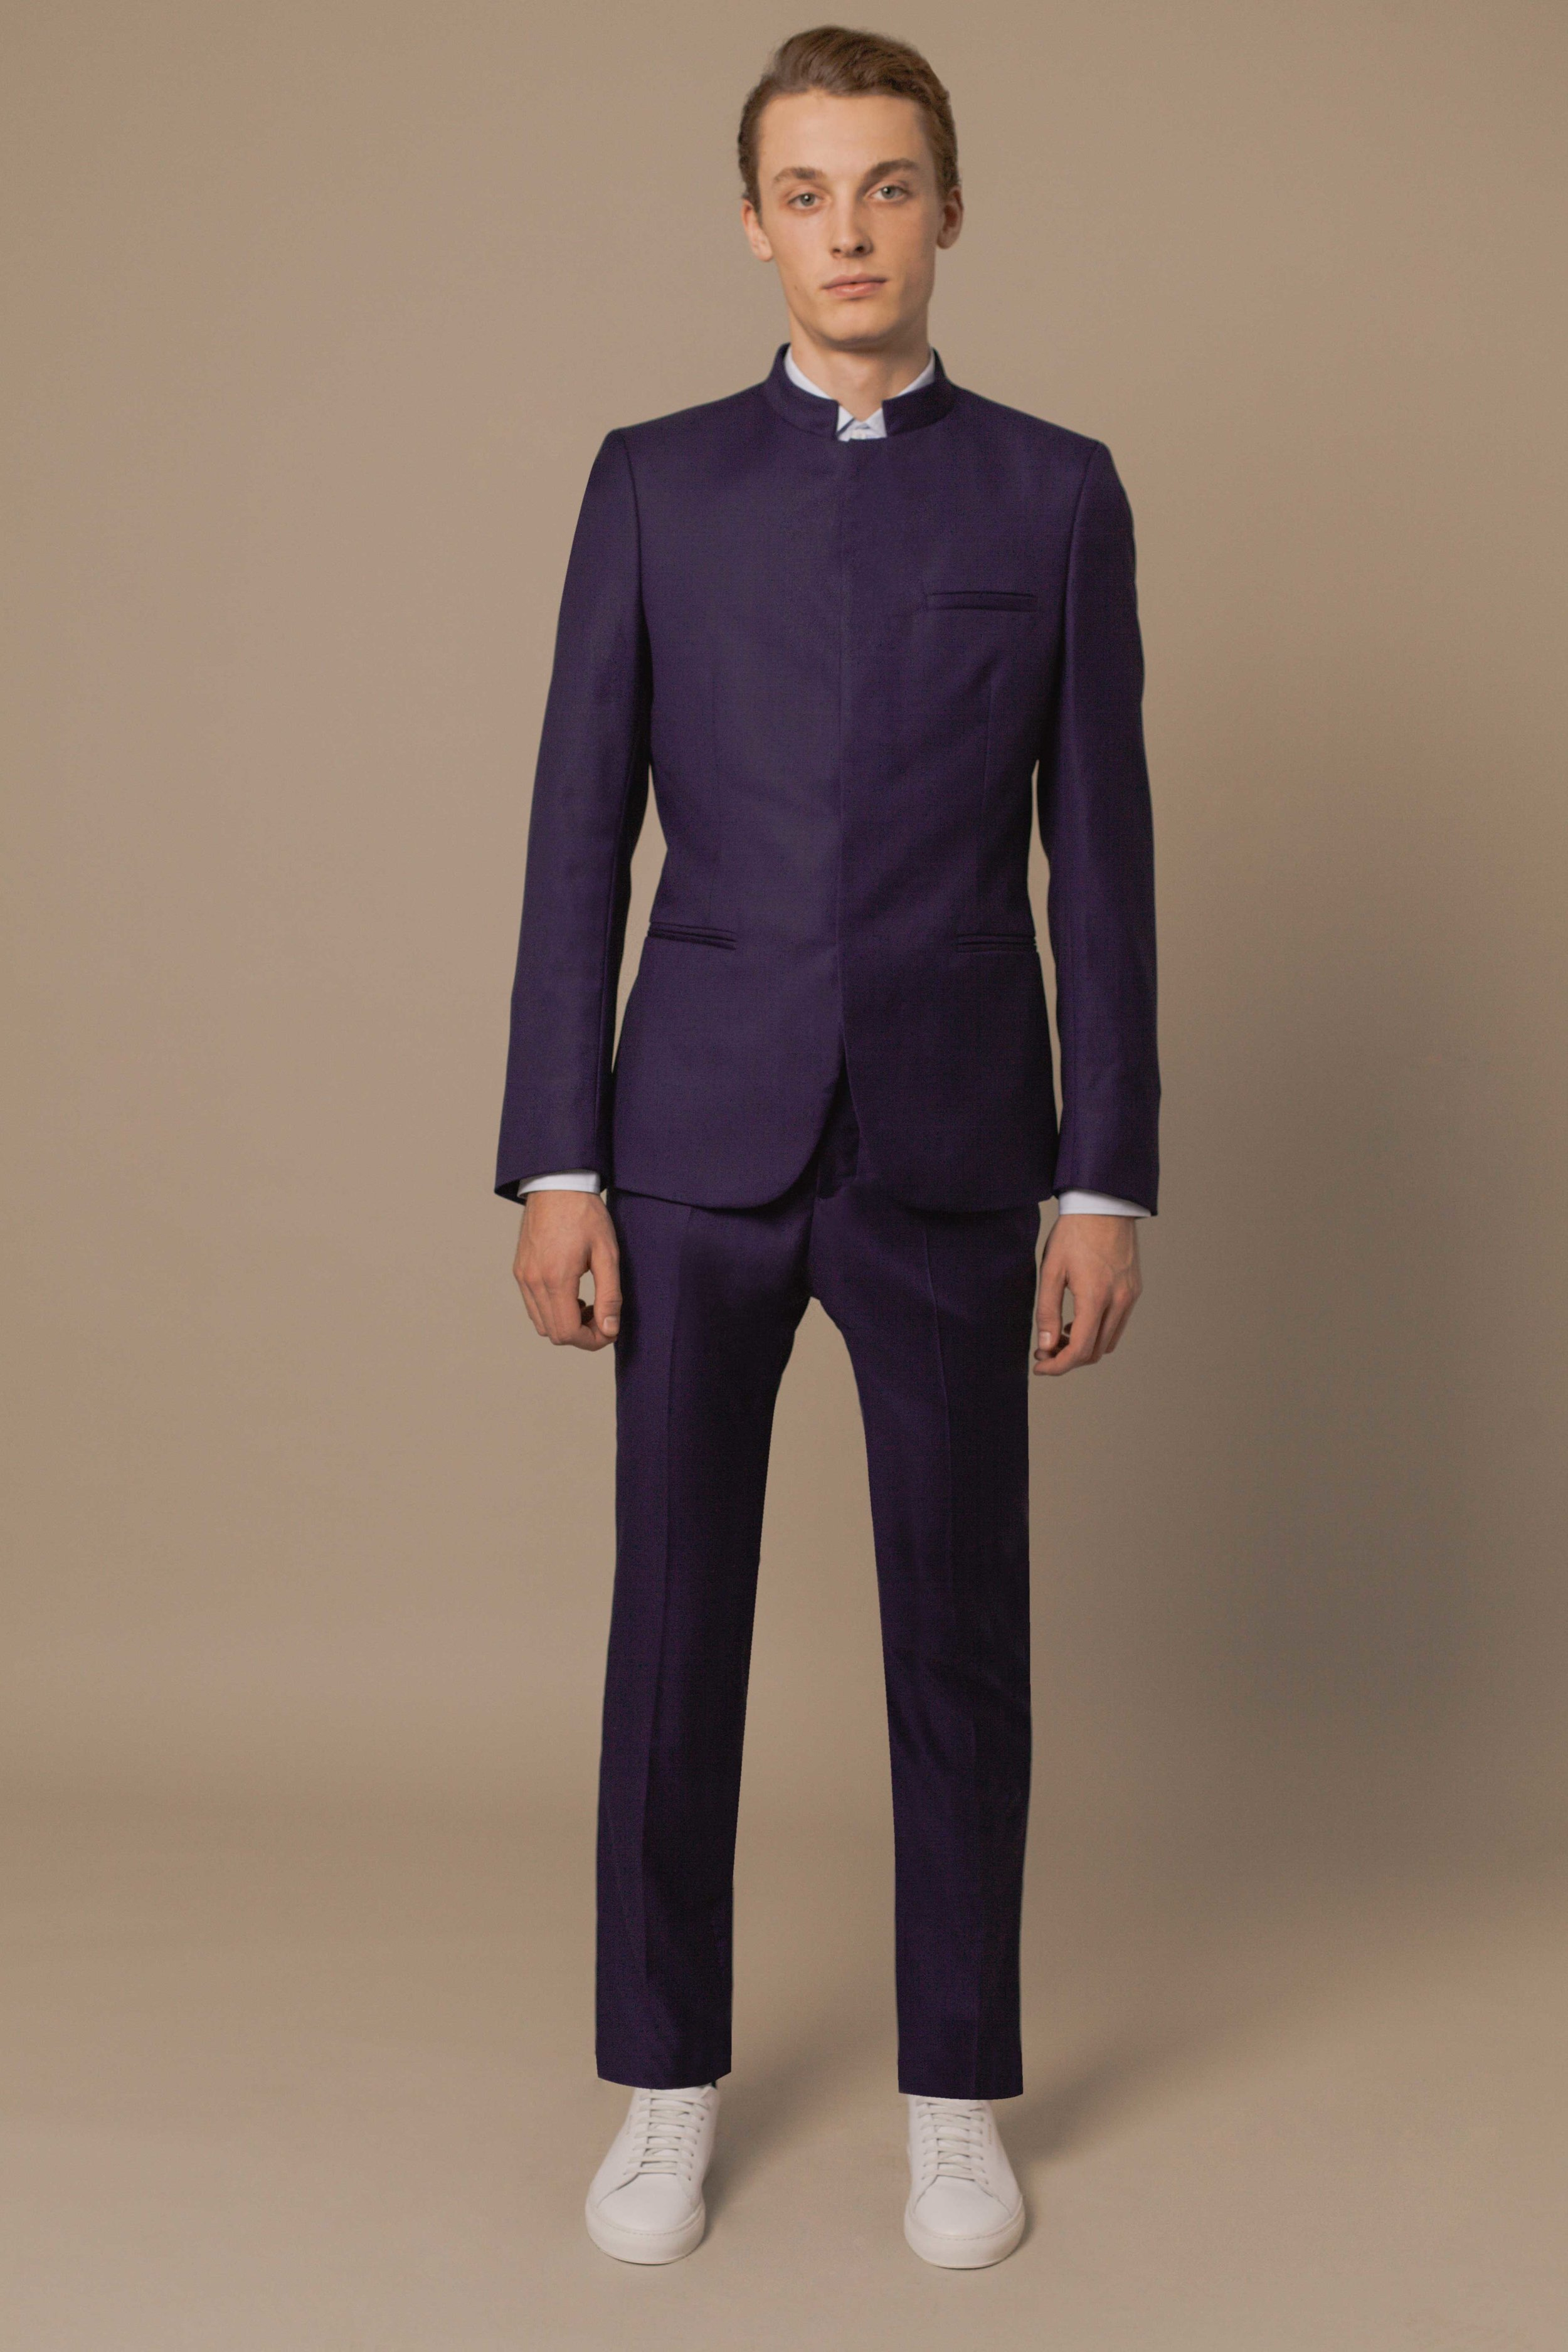 Bombay jacket cobalt blue wool Slim fit trousers cobalt blue wool Classic shirt sky blue cotton Made in Italy